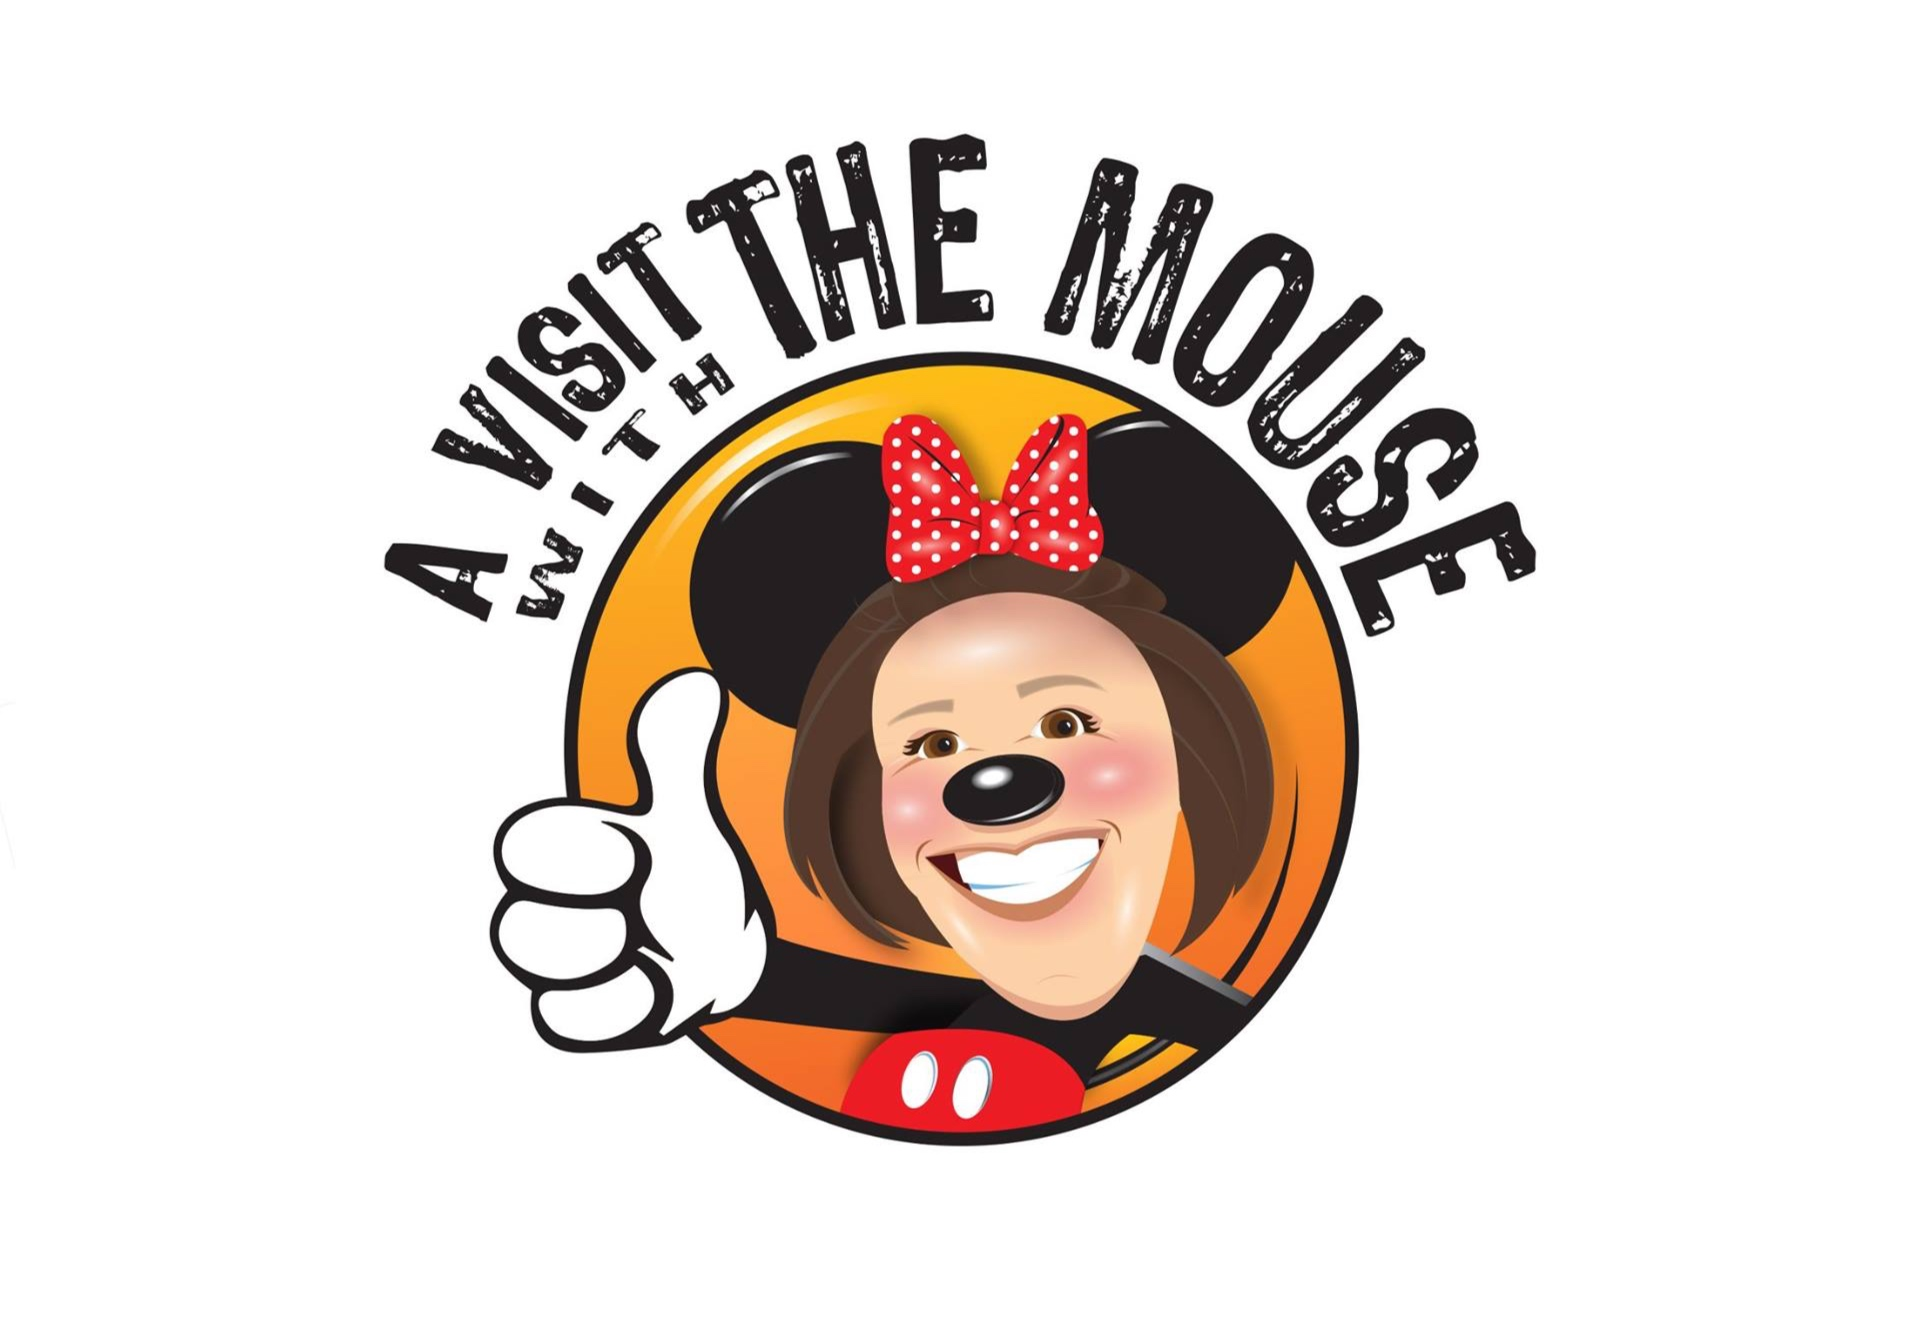 Brand Identity: A Visit with the Mouse